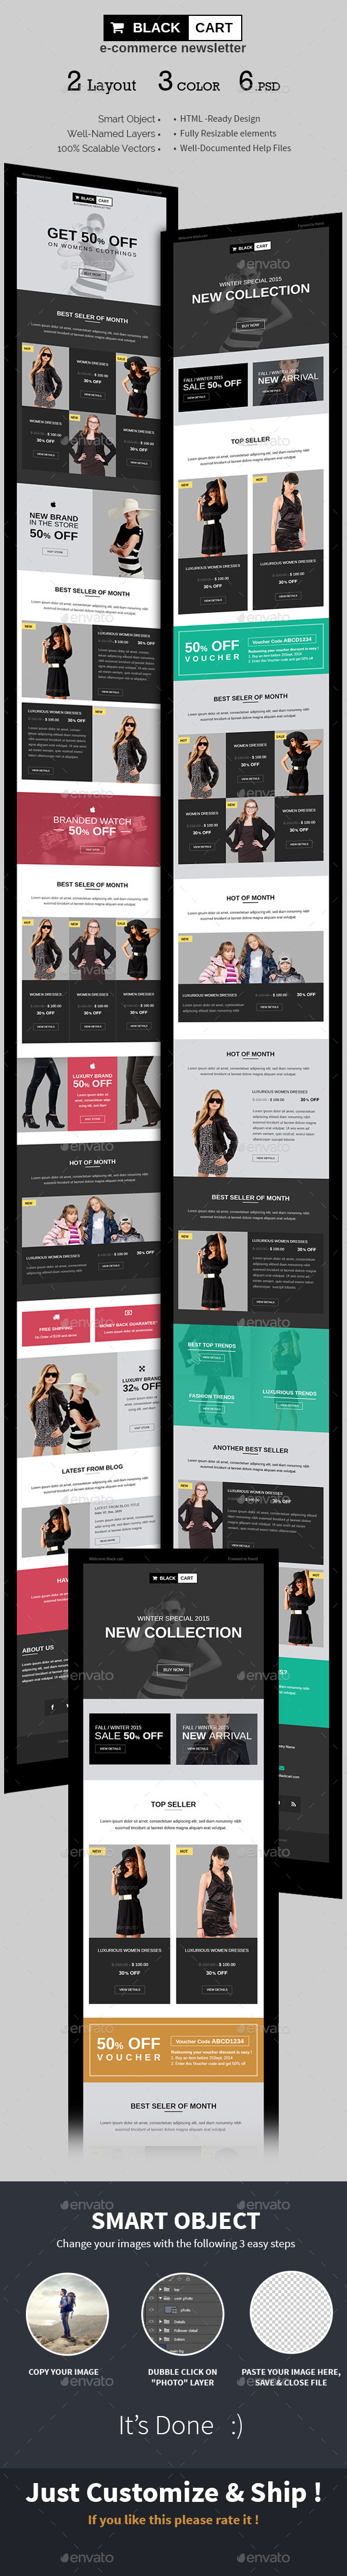 E-commerce Special Offers Newsletter PSD Template - E-newsletters Web Elements